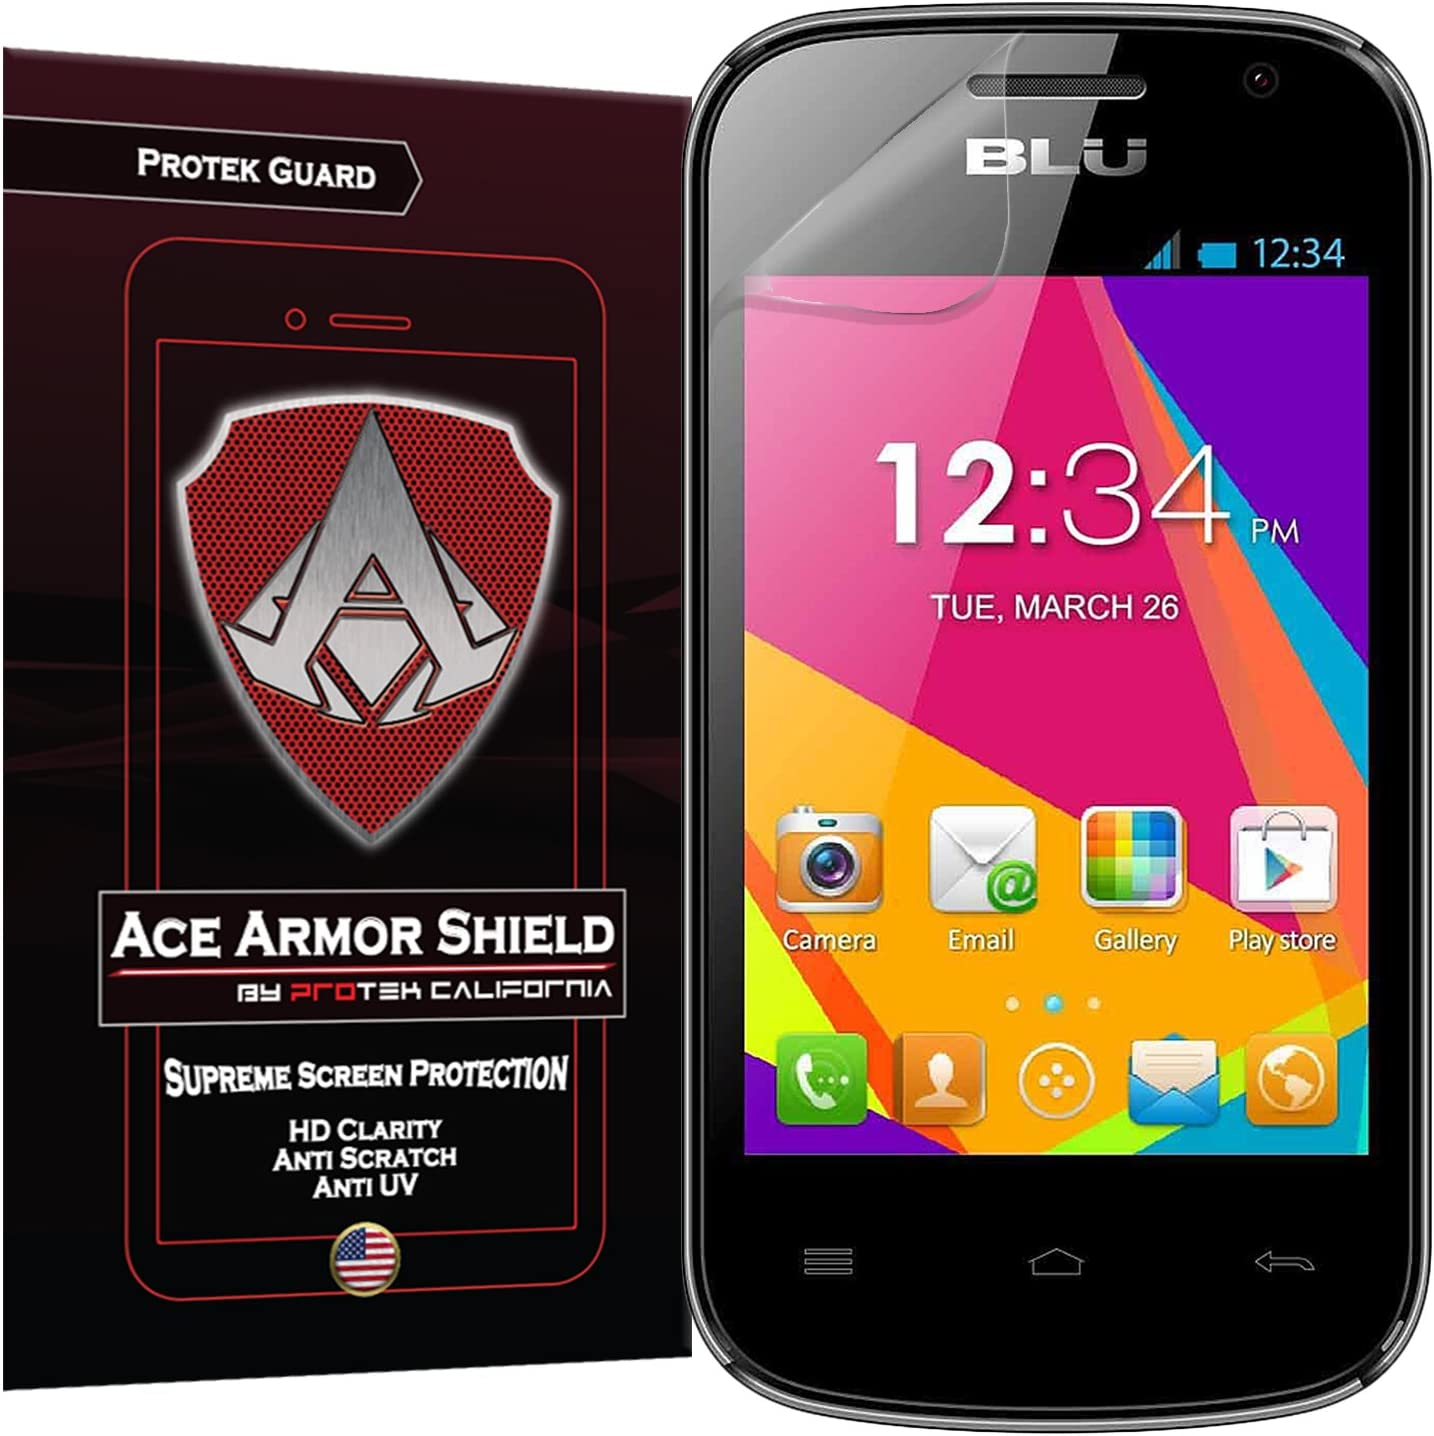 Ace Armor Shield Protek Guard (2 Pack) Screen Protector for The Blu Dash JR D141W with Free Lifetime Replacement Warranty